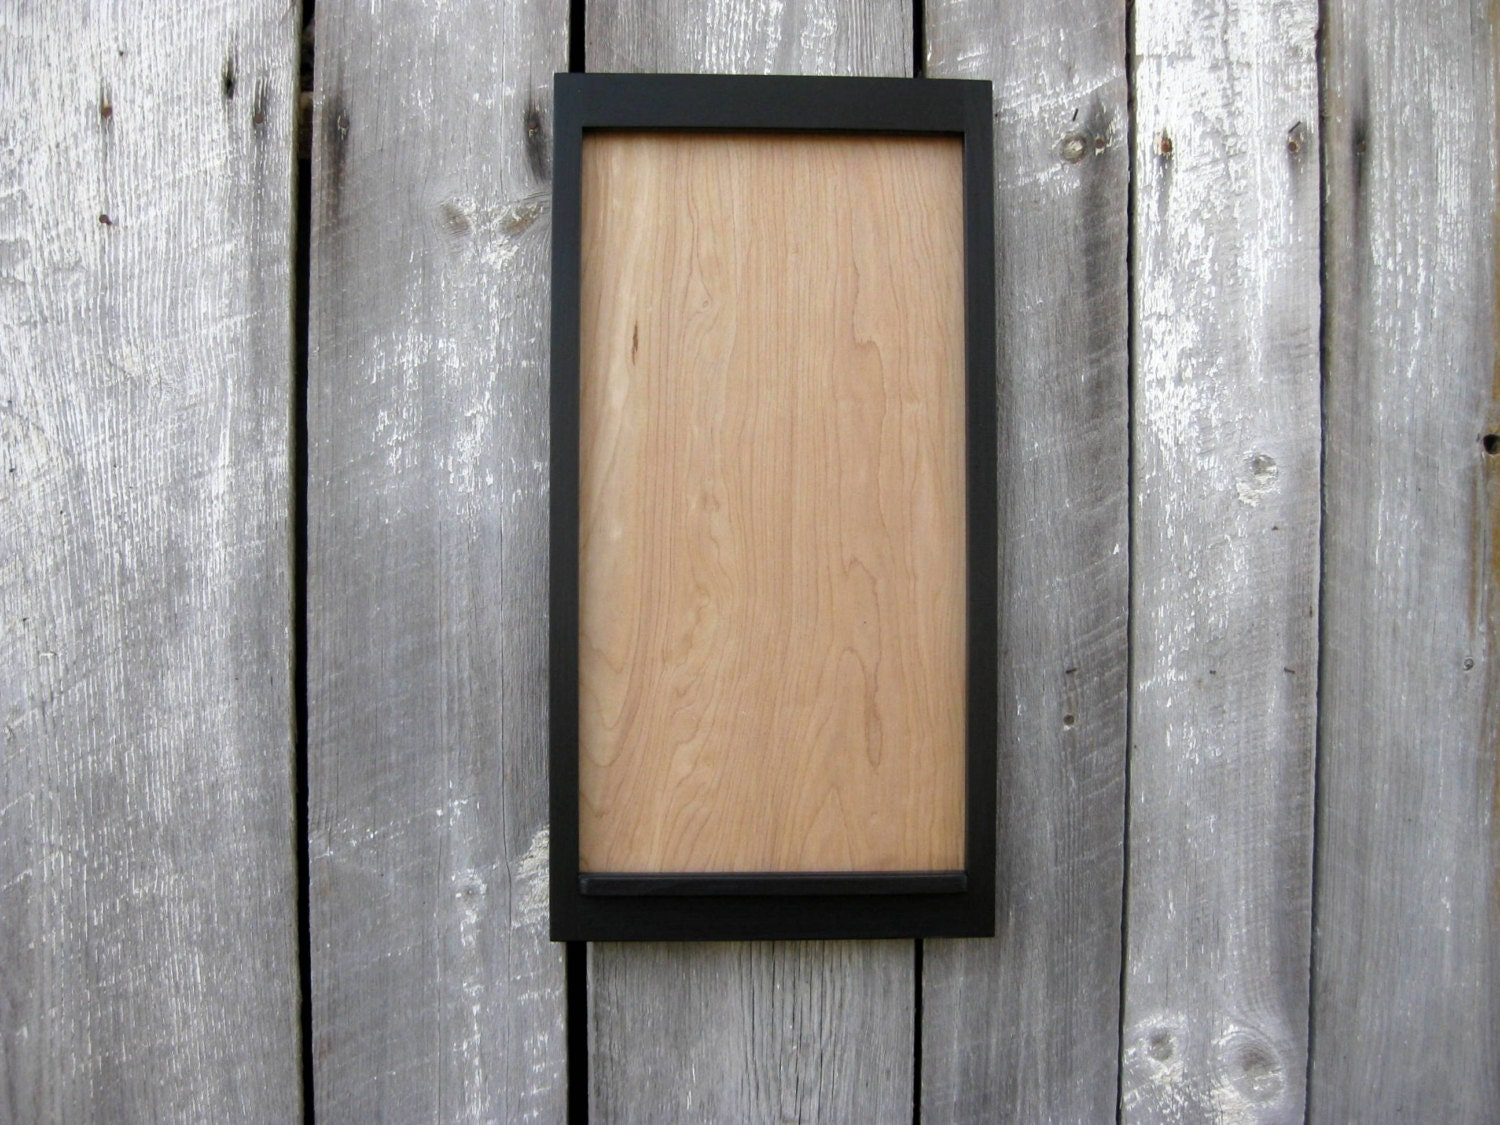 Calendar Wooden Frame : Calendar holder wood frame